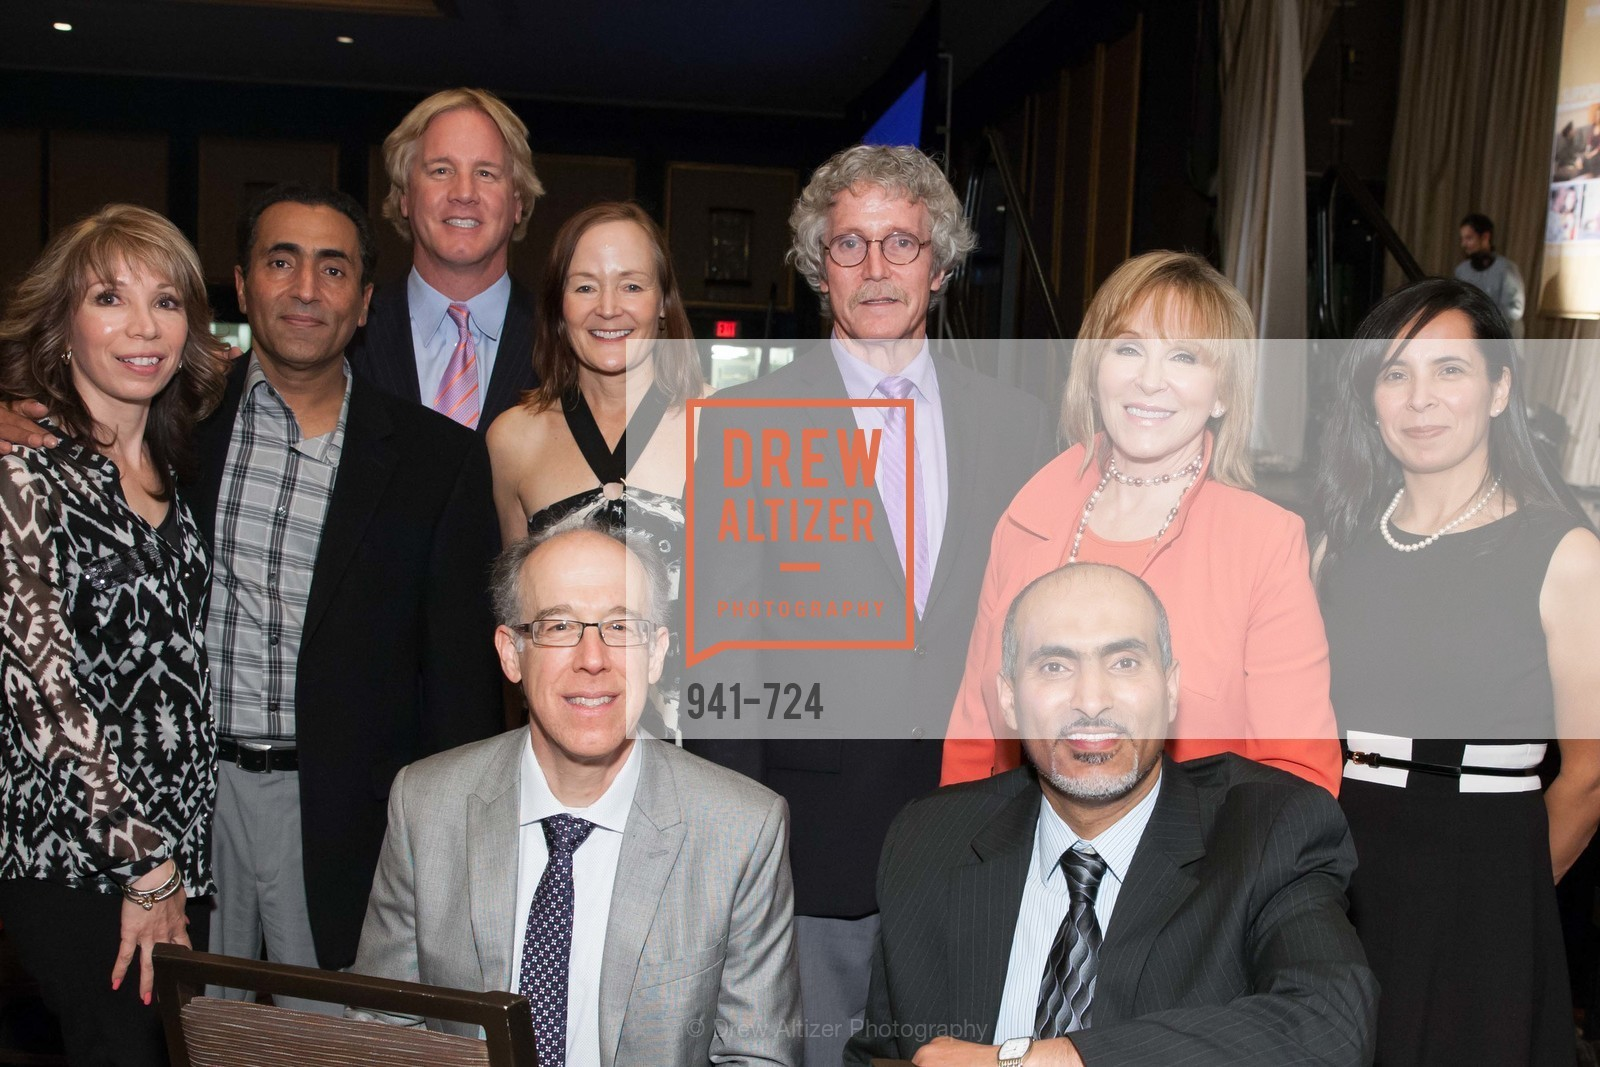 Sheila Radman, Fadal Radman, Don Falk, Rick Pettibone, Noreen Beiro, Steve Tenets, Cheryl Jennings, Walid Radman, Lillian Pena, TNDC's 34th Annual Birthday Dinner, US, May 12th, 2015,Drew Altizer, Drew Altizer Photography, full-service agency, private events, San Francisco photographer, photographer california